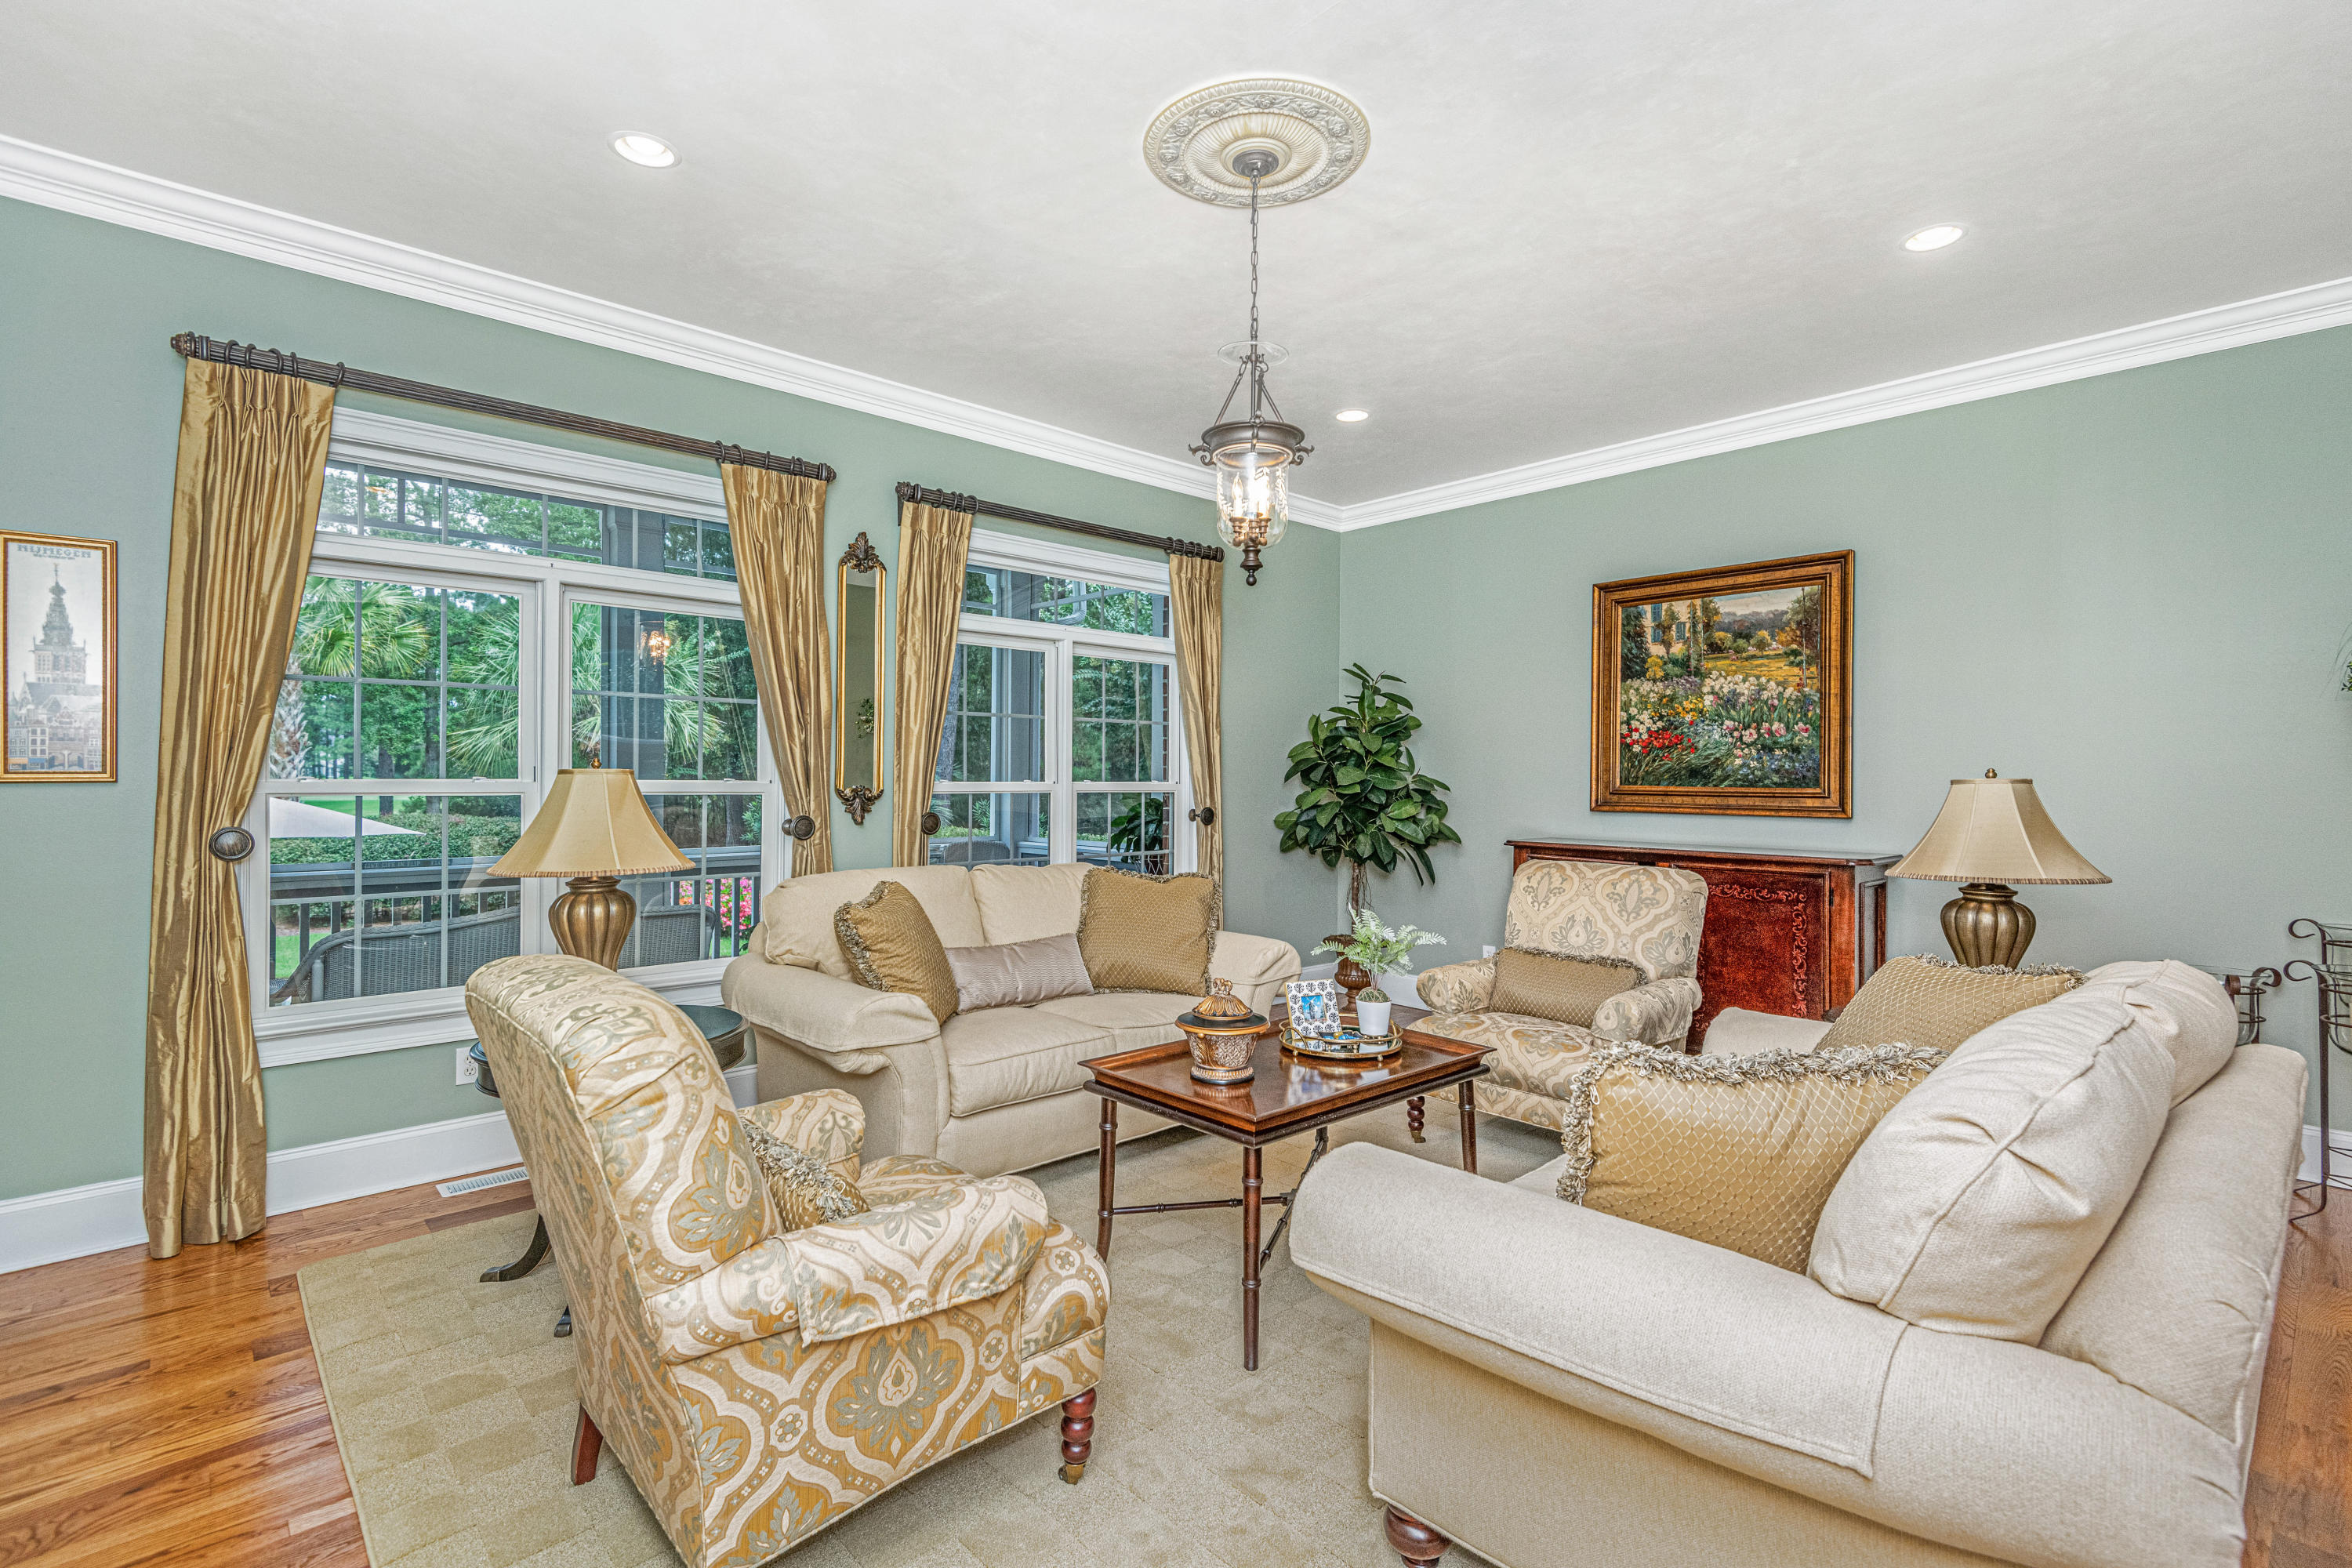 Dunes West Homes For Sale - 1837 Shell Ring, Mount Pleasant, SC - 11